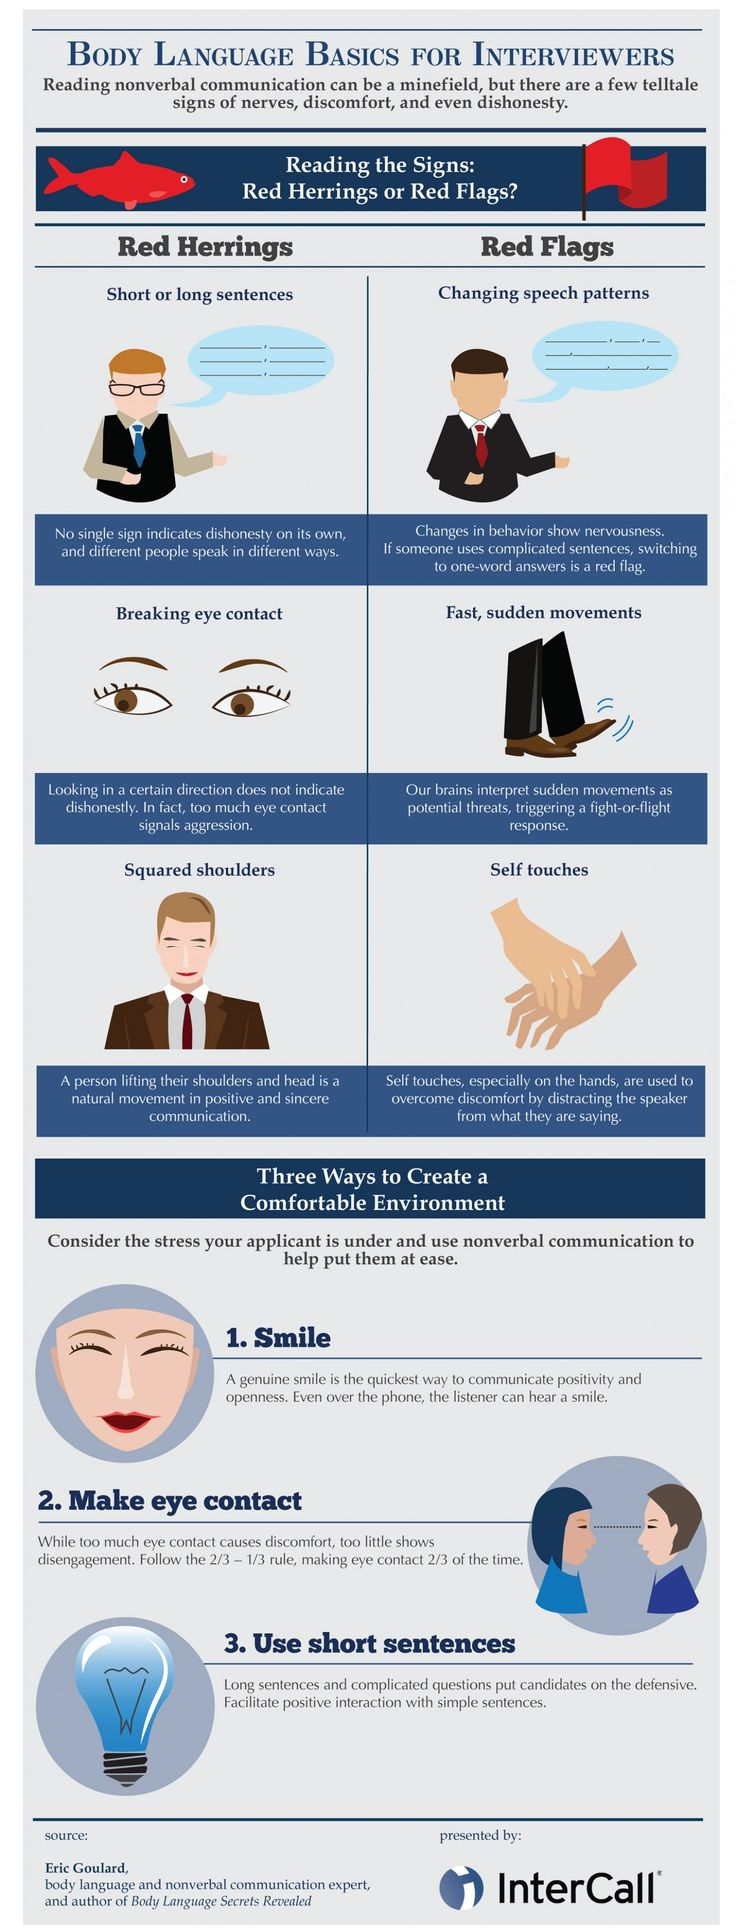 body language basics for interviewers business networkingbusiness tipsonline interviewjob - Preparing For A Job Interview Body Language